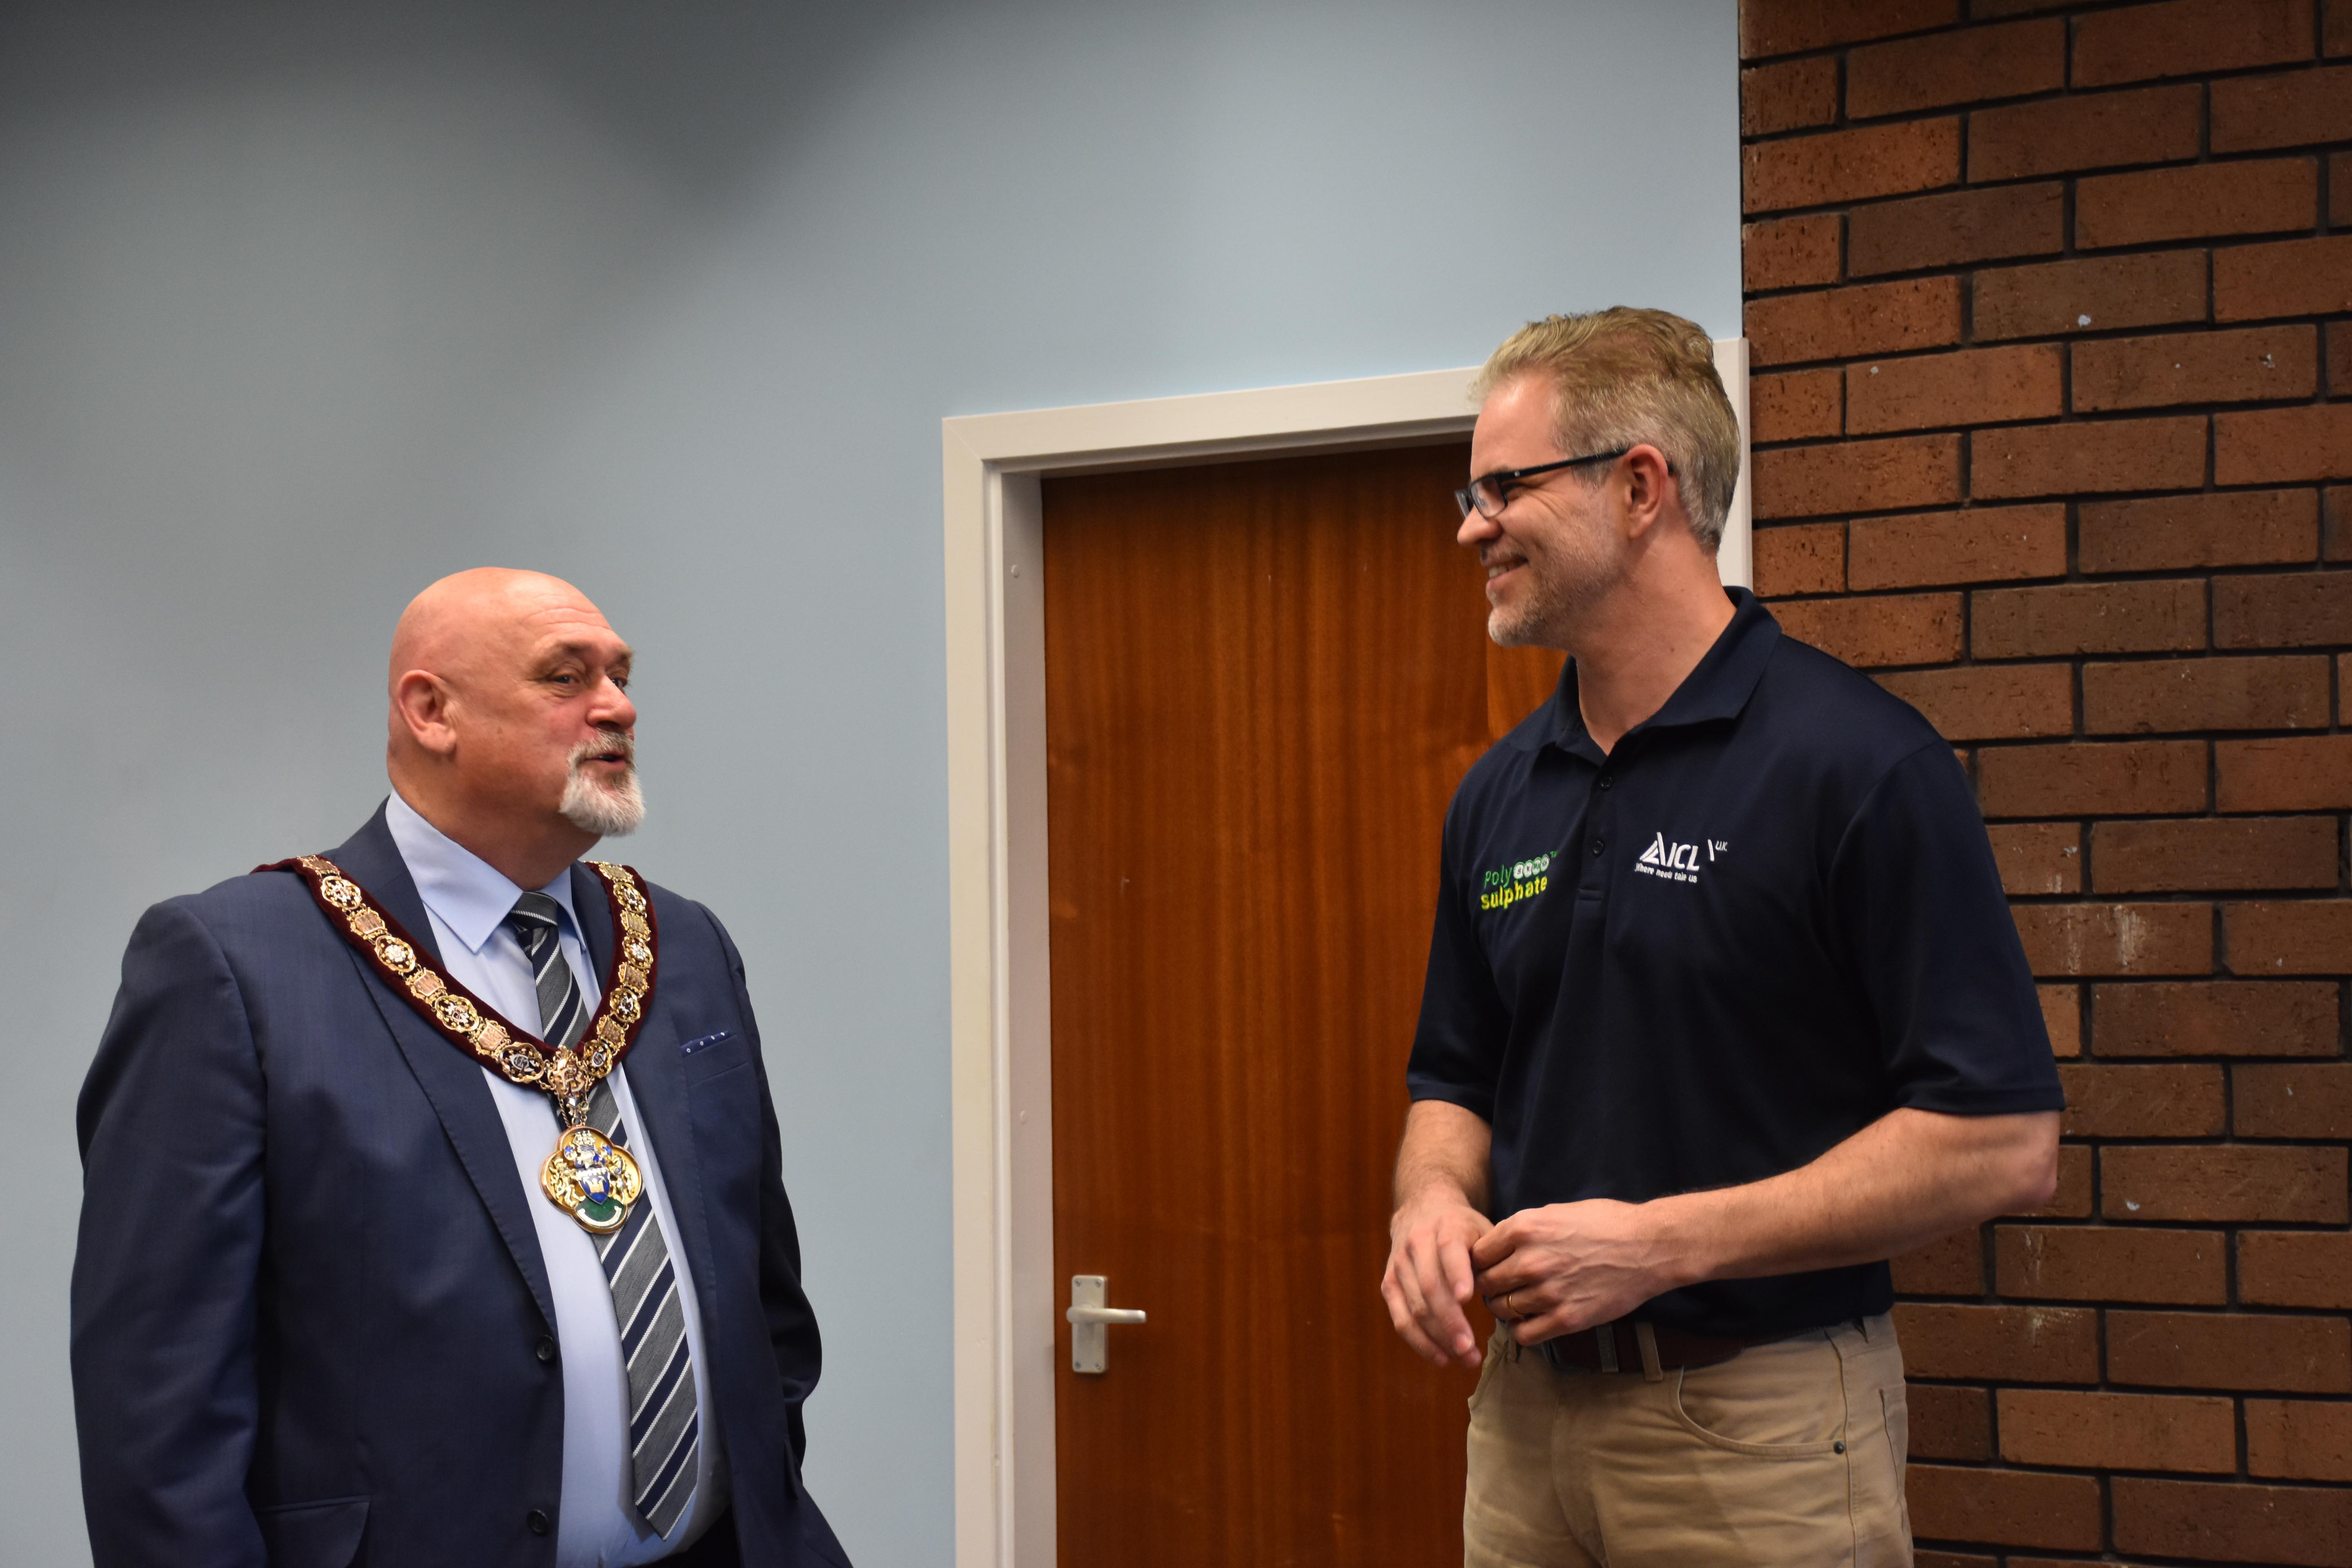 Marc Kirsten greets the Mayor upon arrival